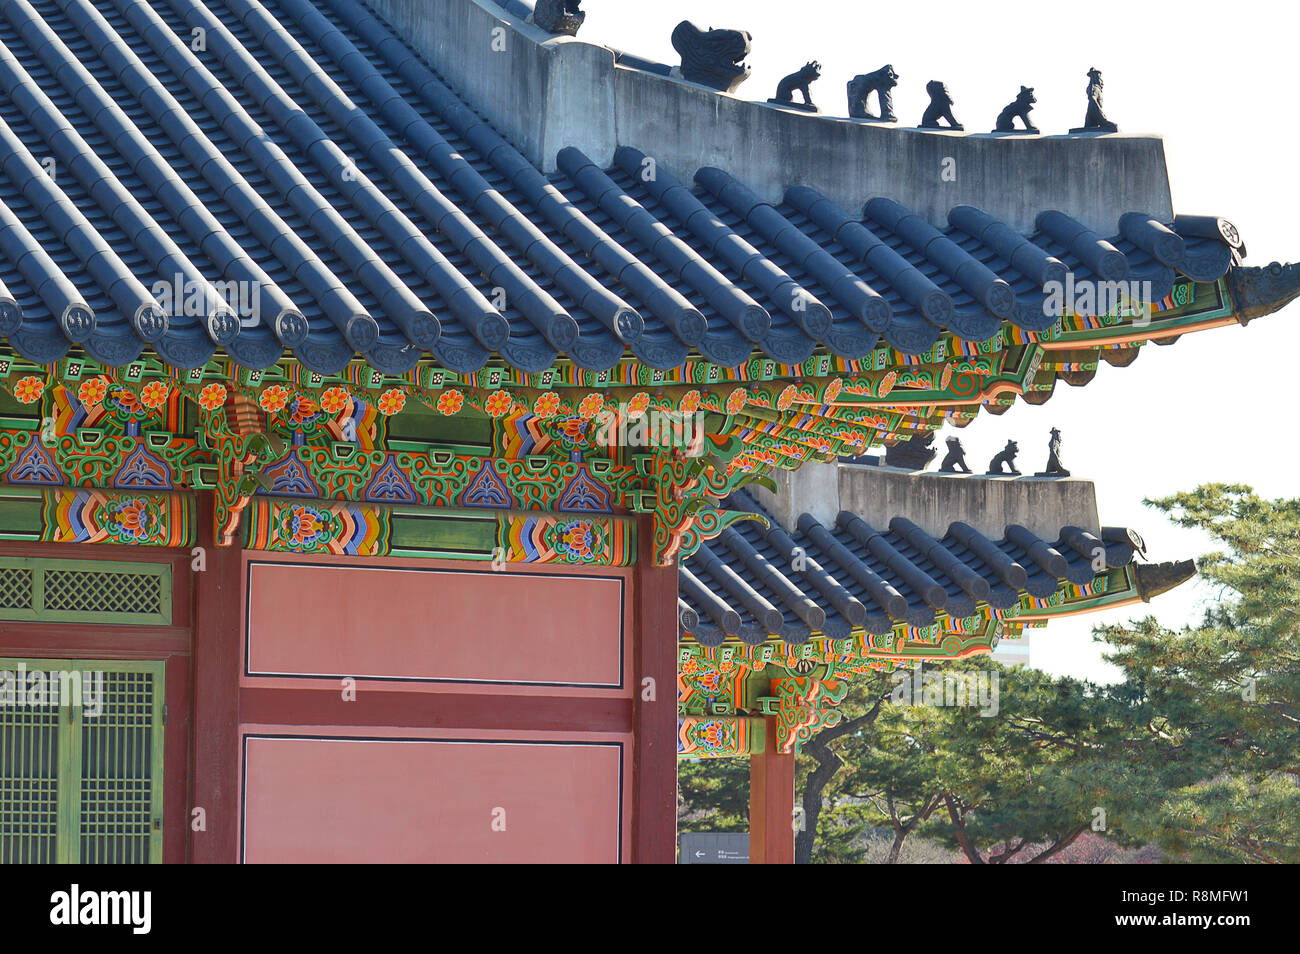 Hipped roofs, tiles, painted decorations, and hermits, monks and monsters on the roof as guardians, typical Korean palatial architecture at Changdeokg - Stock Image